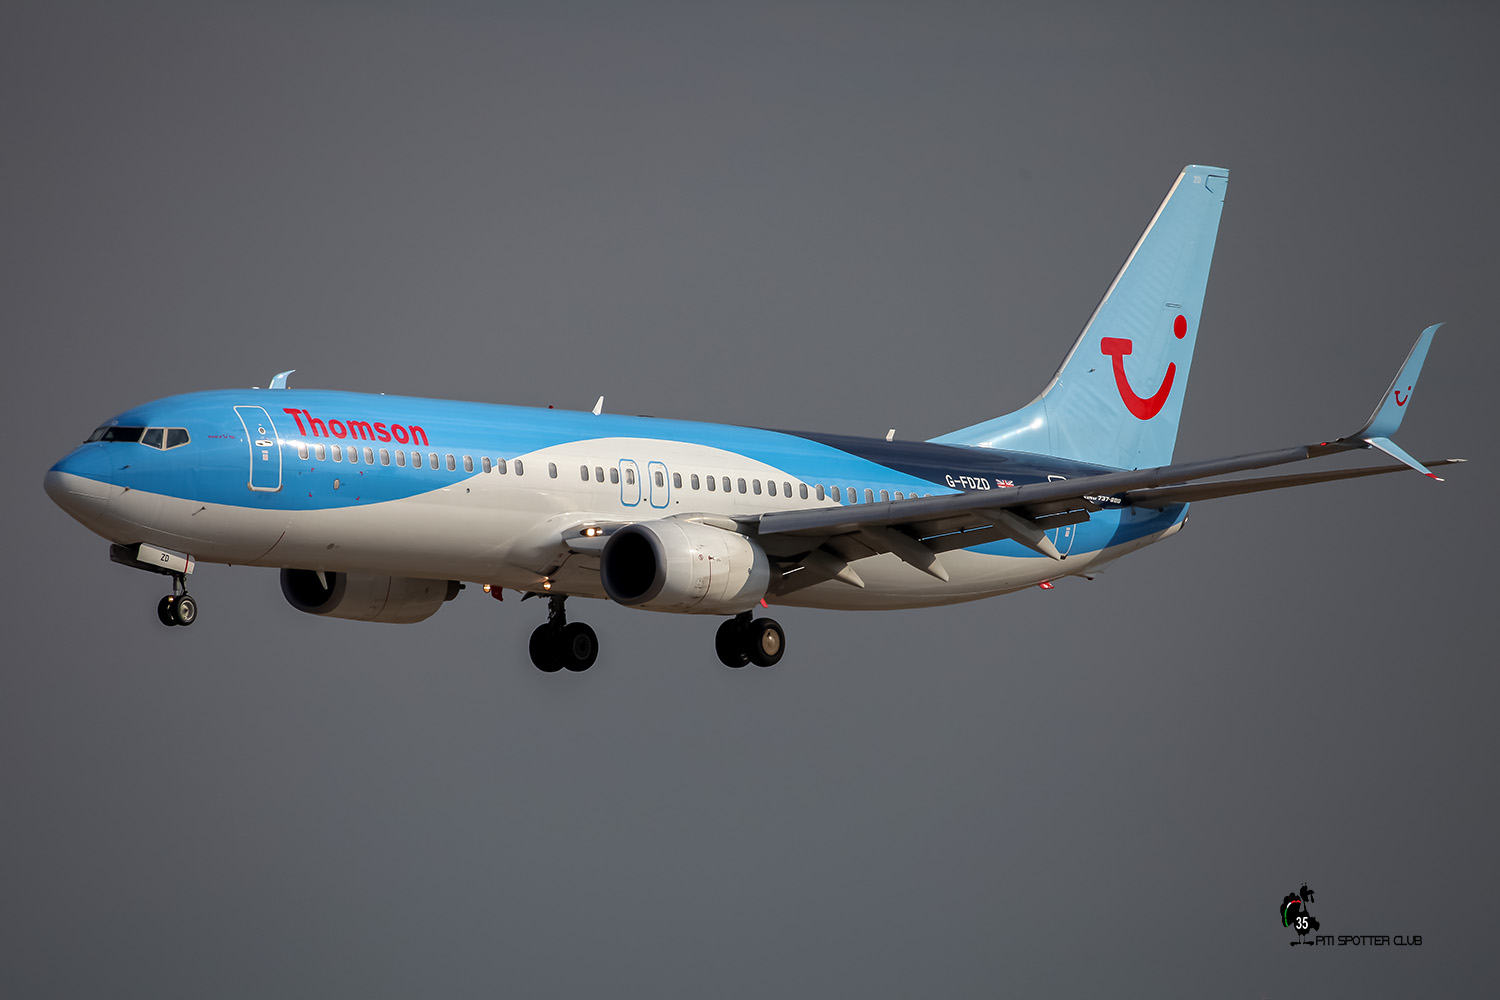 G-FDZD B737-8K5 35132/2276 Thomson Airways